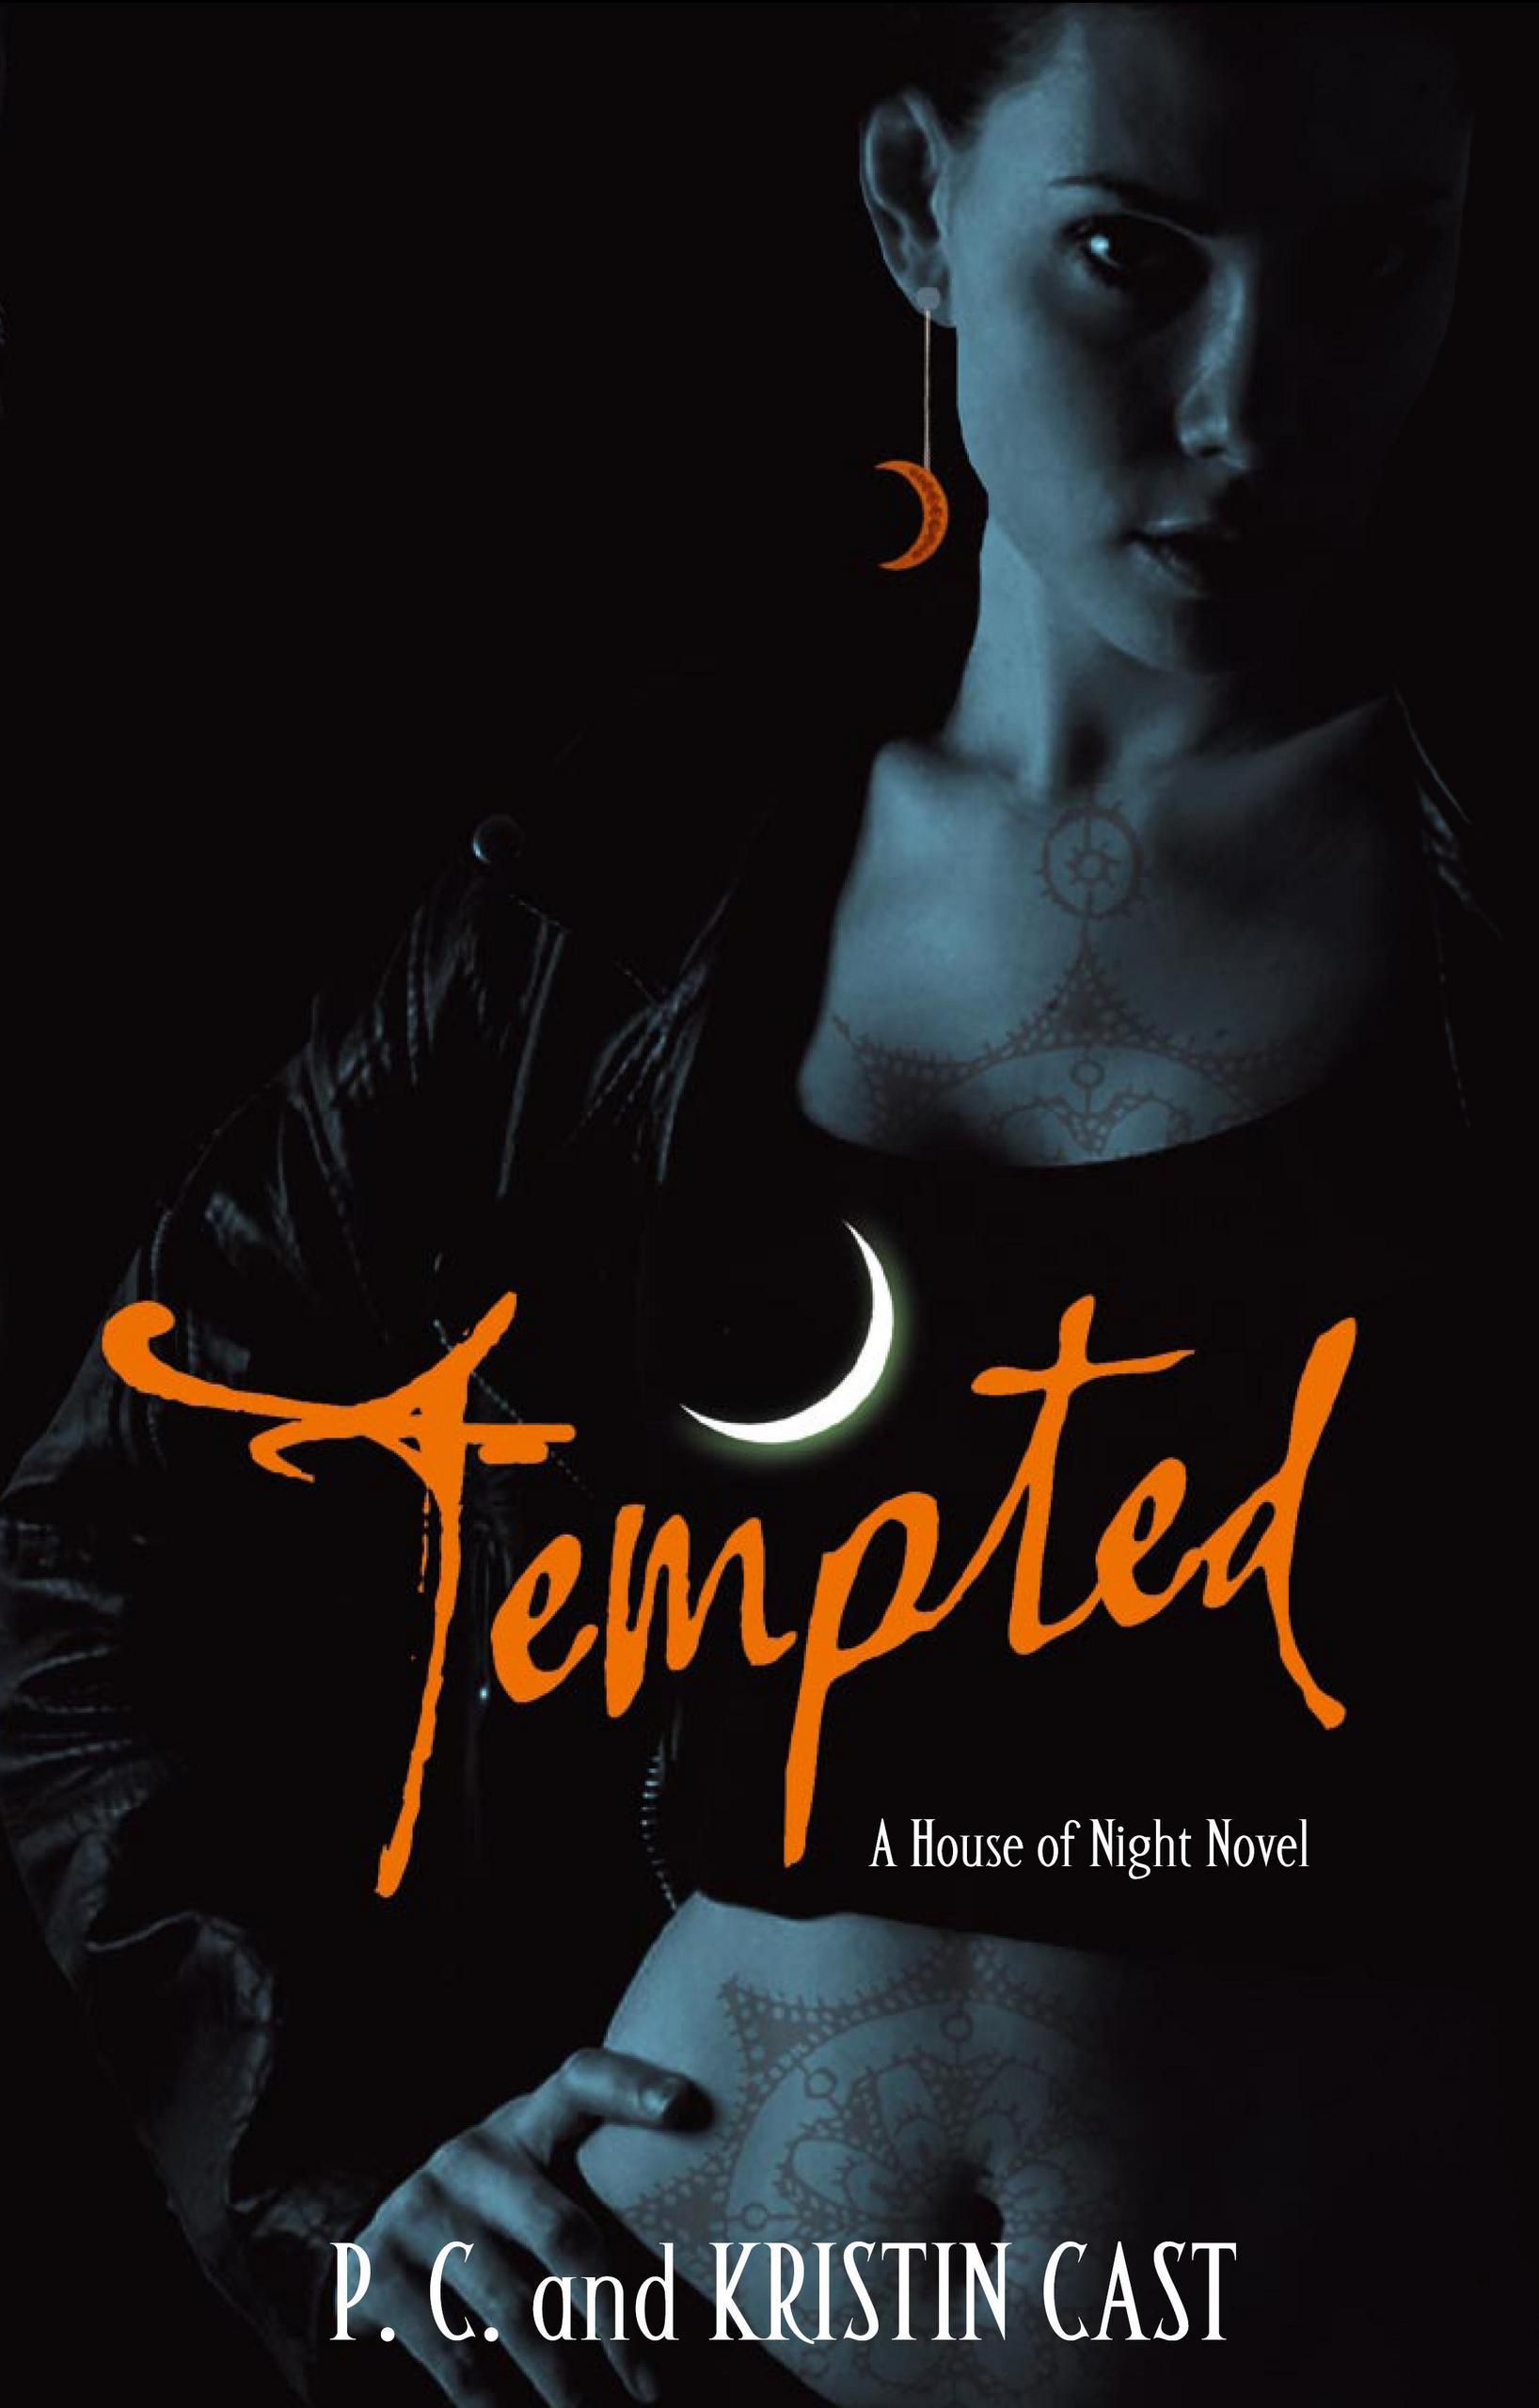 Cool Book Cover Questions : Tempted first impressions ging house of night